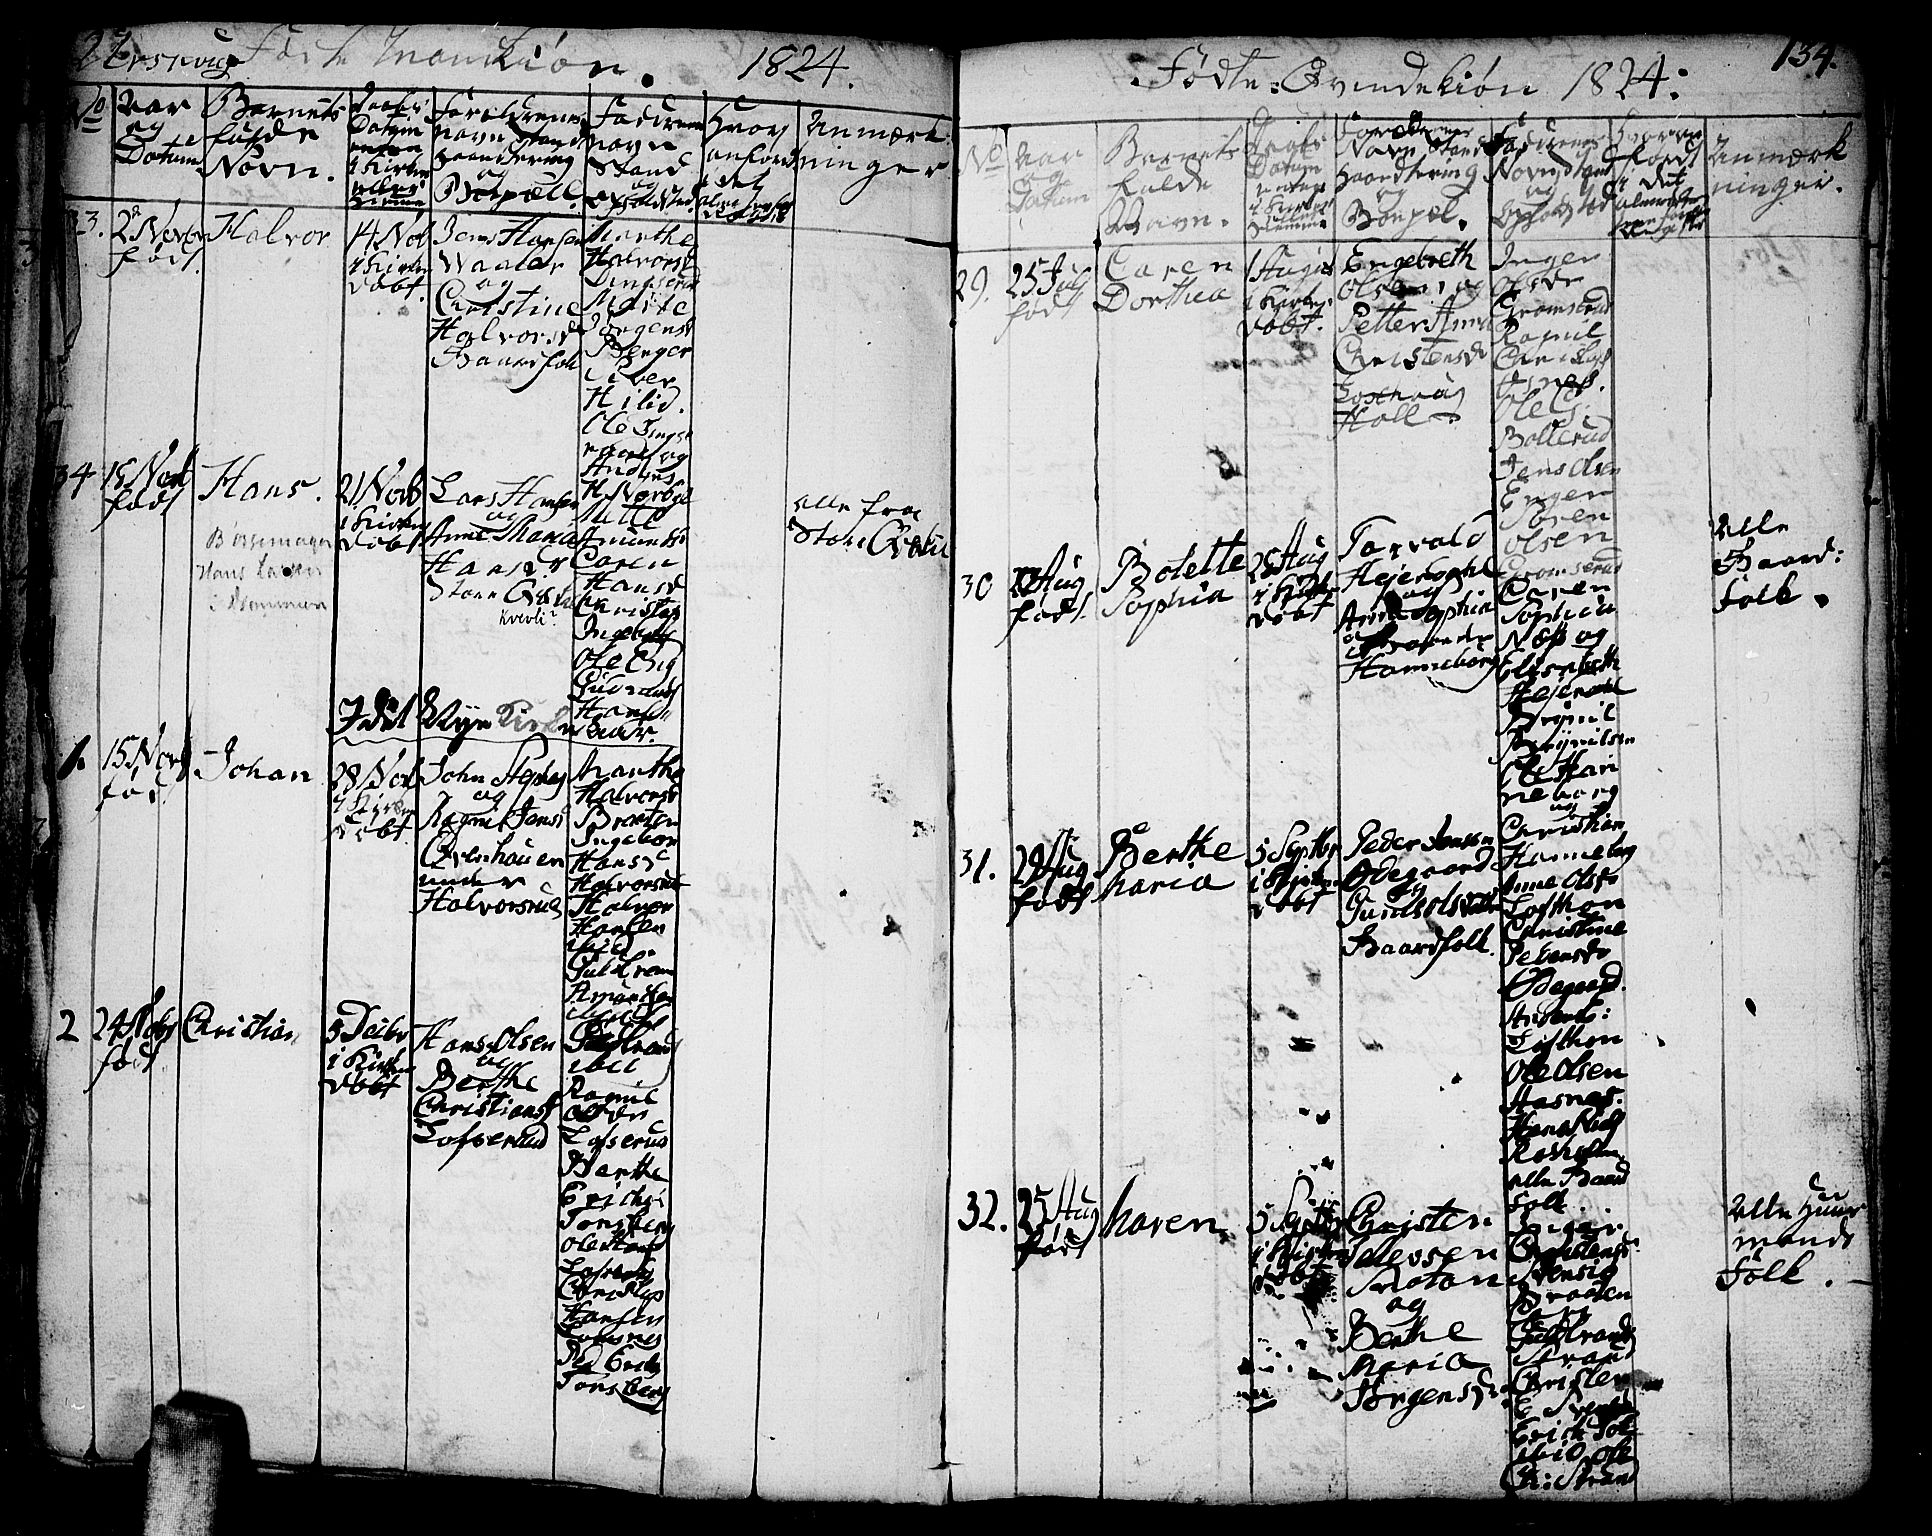 SAO, Aurskog prestekontor Kirkebøker, F/Fa/L0005: Parish register (official) no. I 5, 1814-1829, p. 134